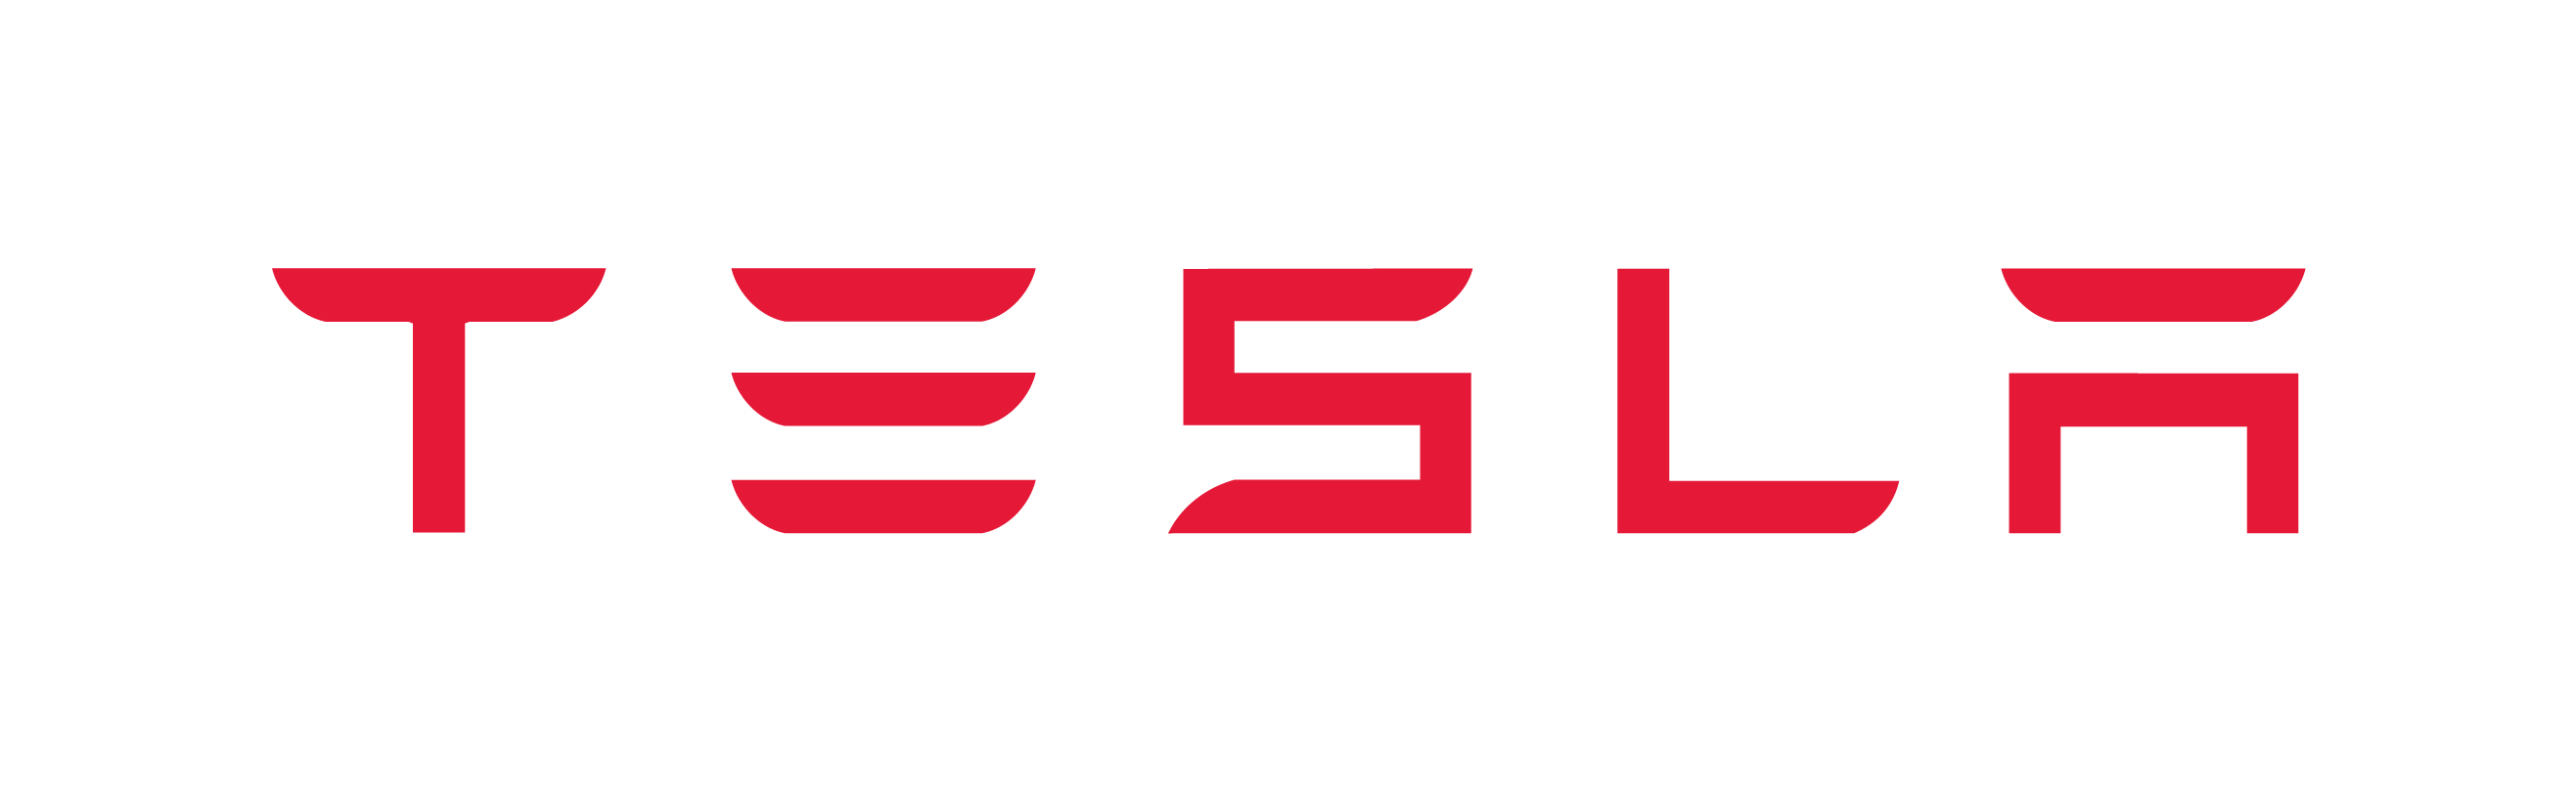 tesla_wordmark_red_prod_fnl.jpg